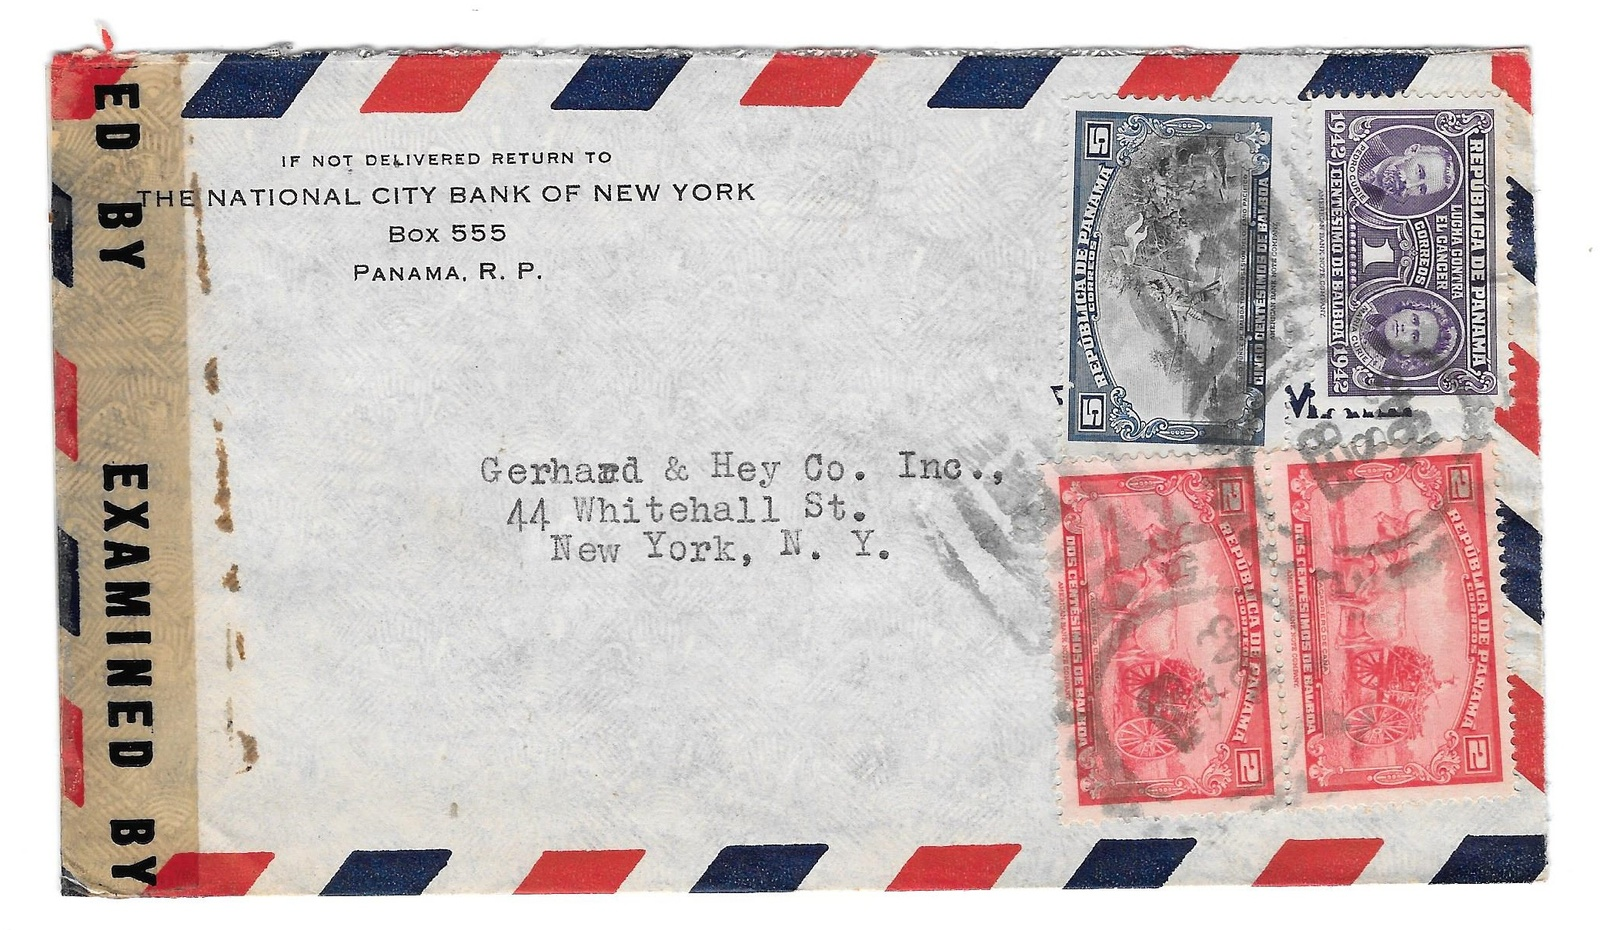 97 corner card international city bank of new york panama